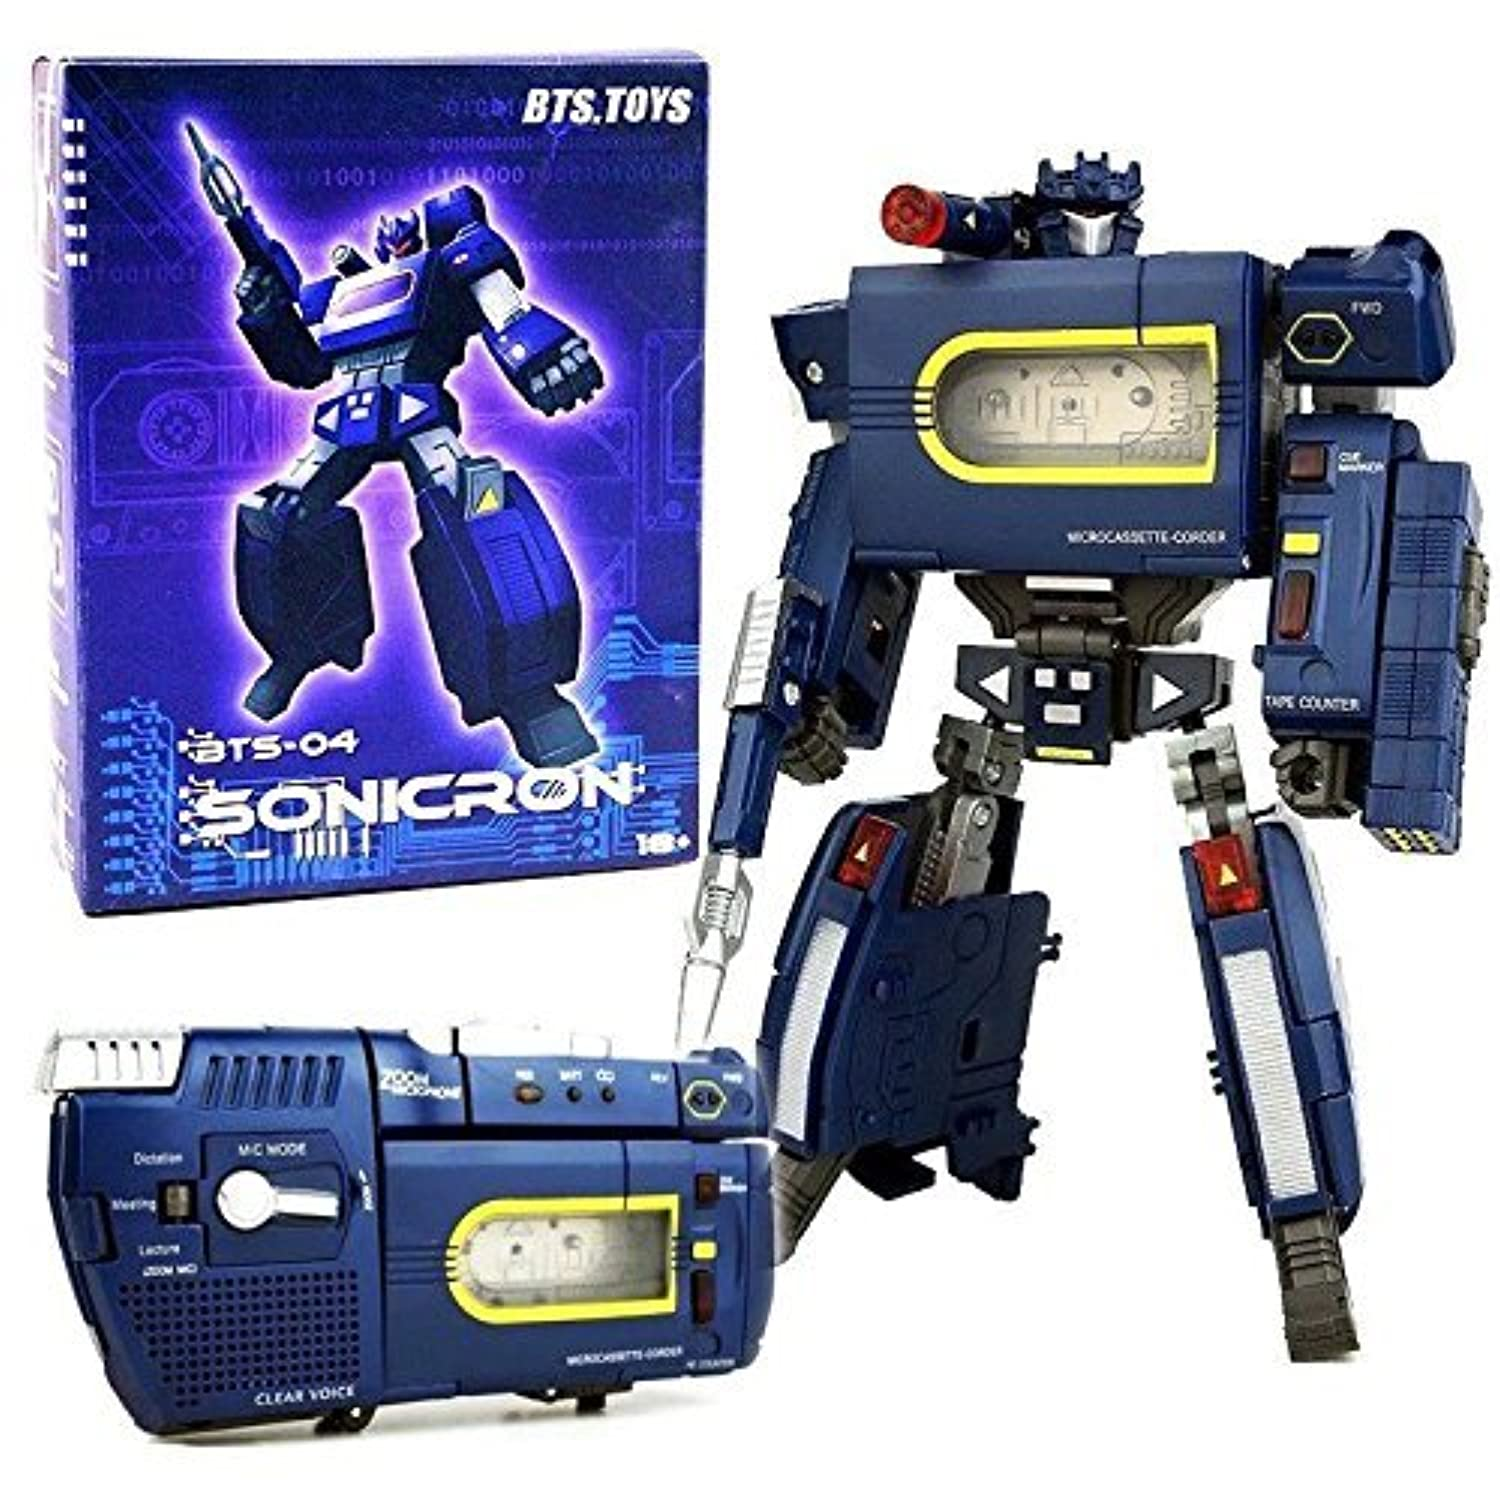 STERLING Transformers Sonicron Soundwave BST BTS-04 Figure